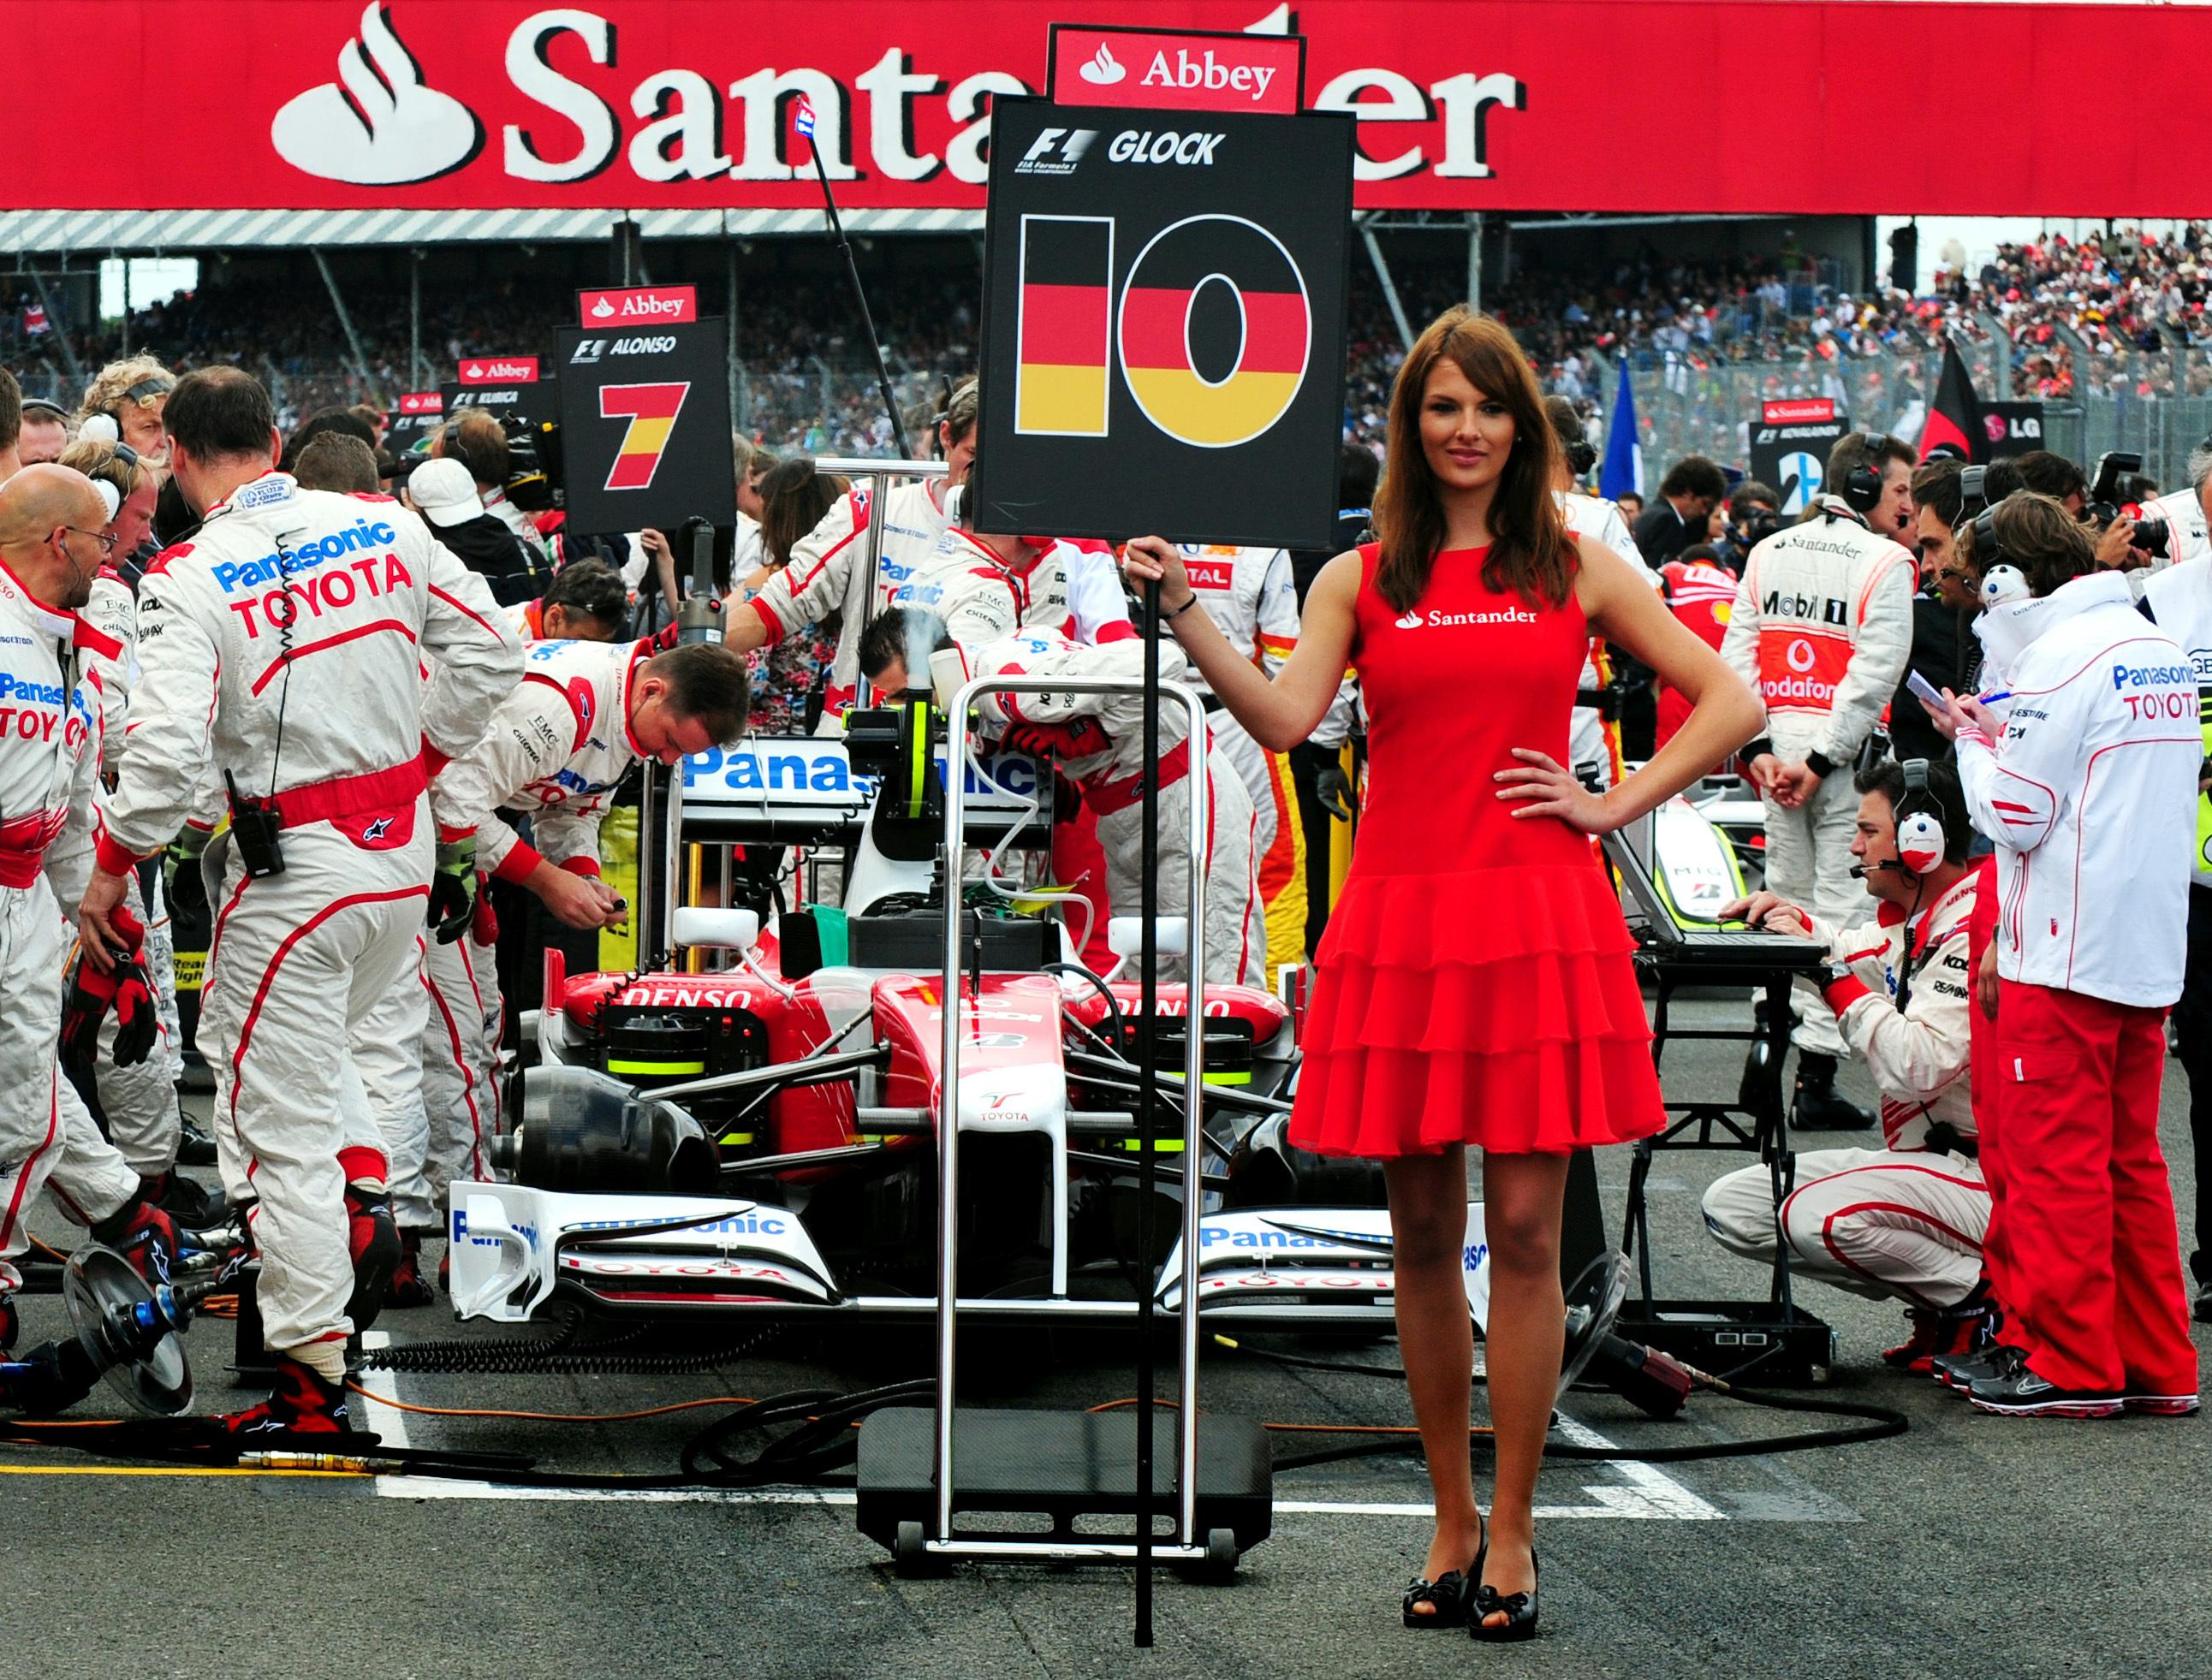 The sight of Grid Girls at Grand Prix races is a thing of the past